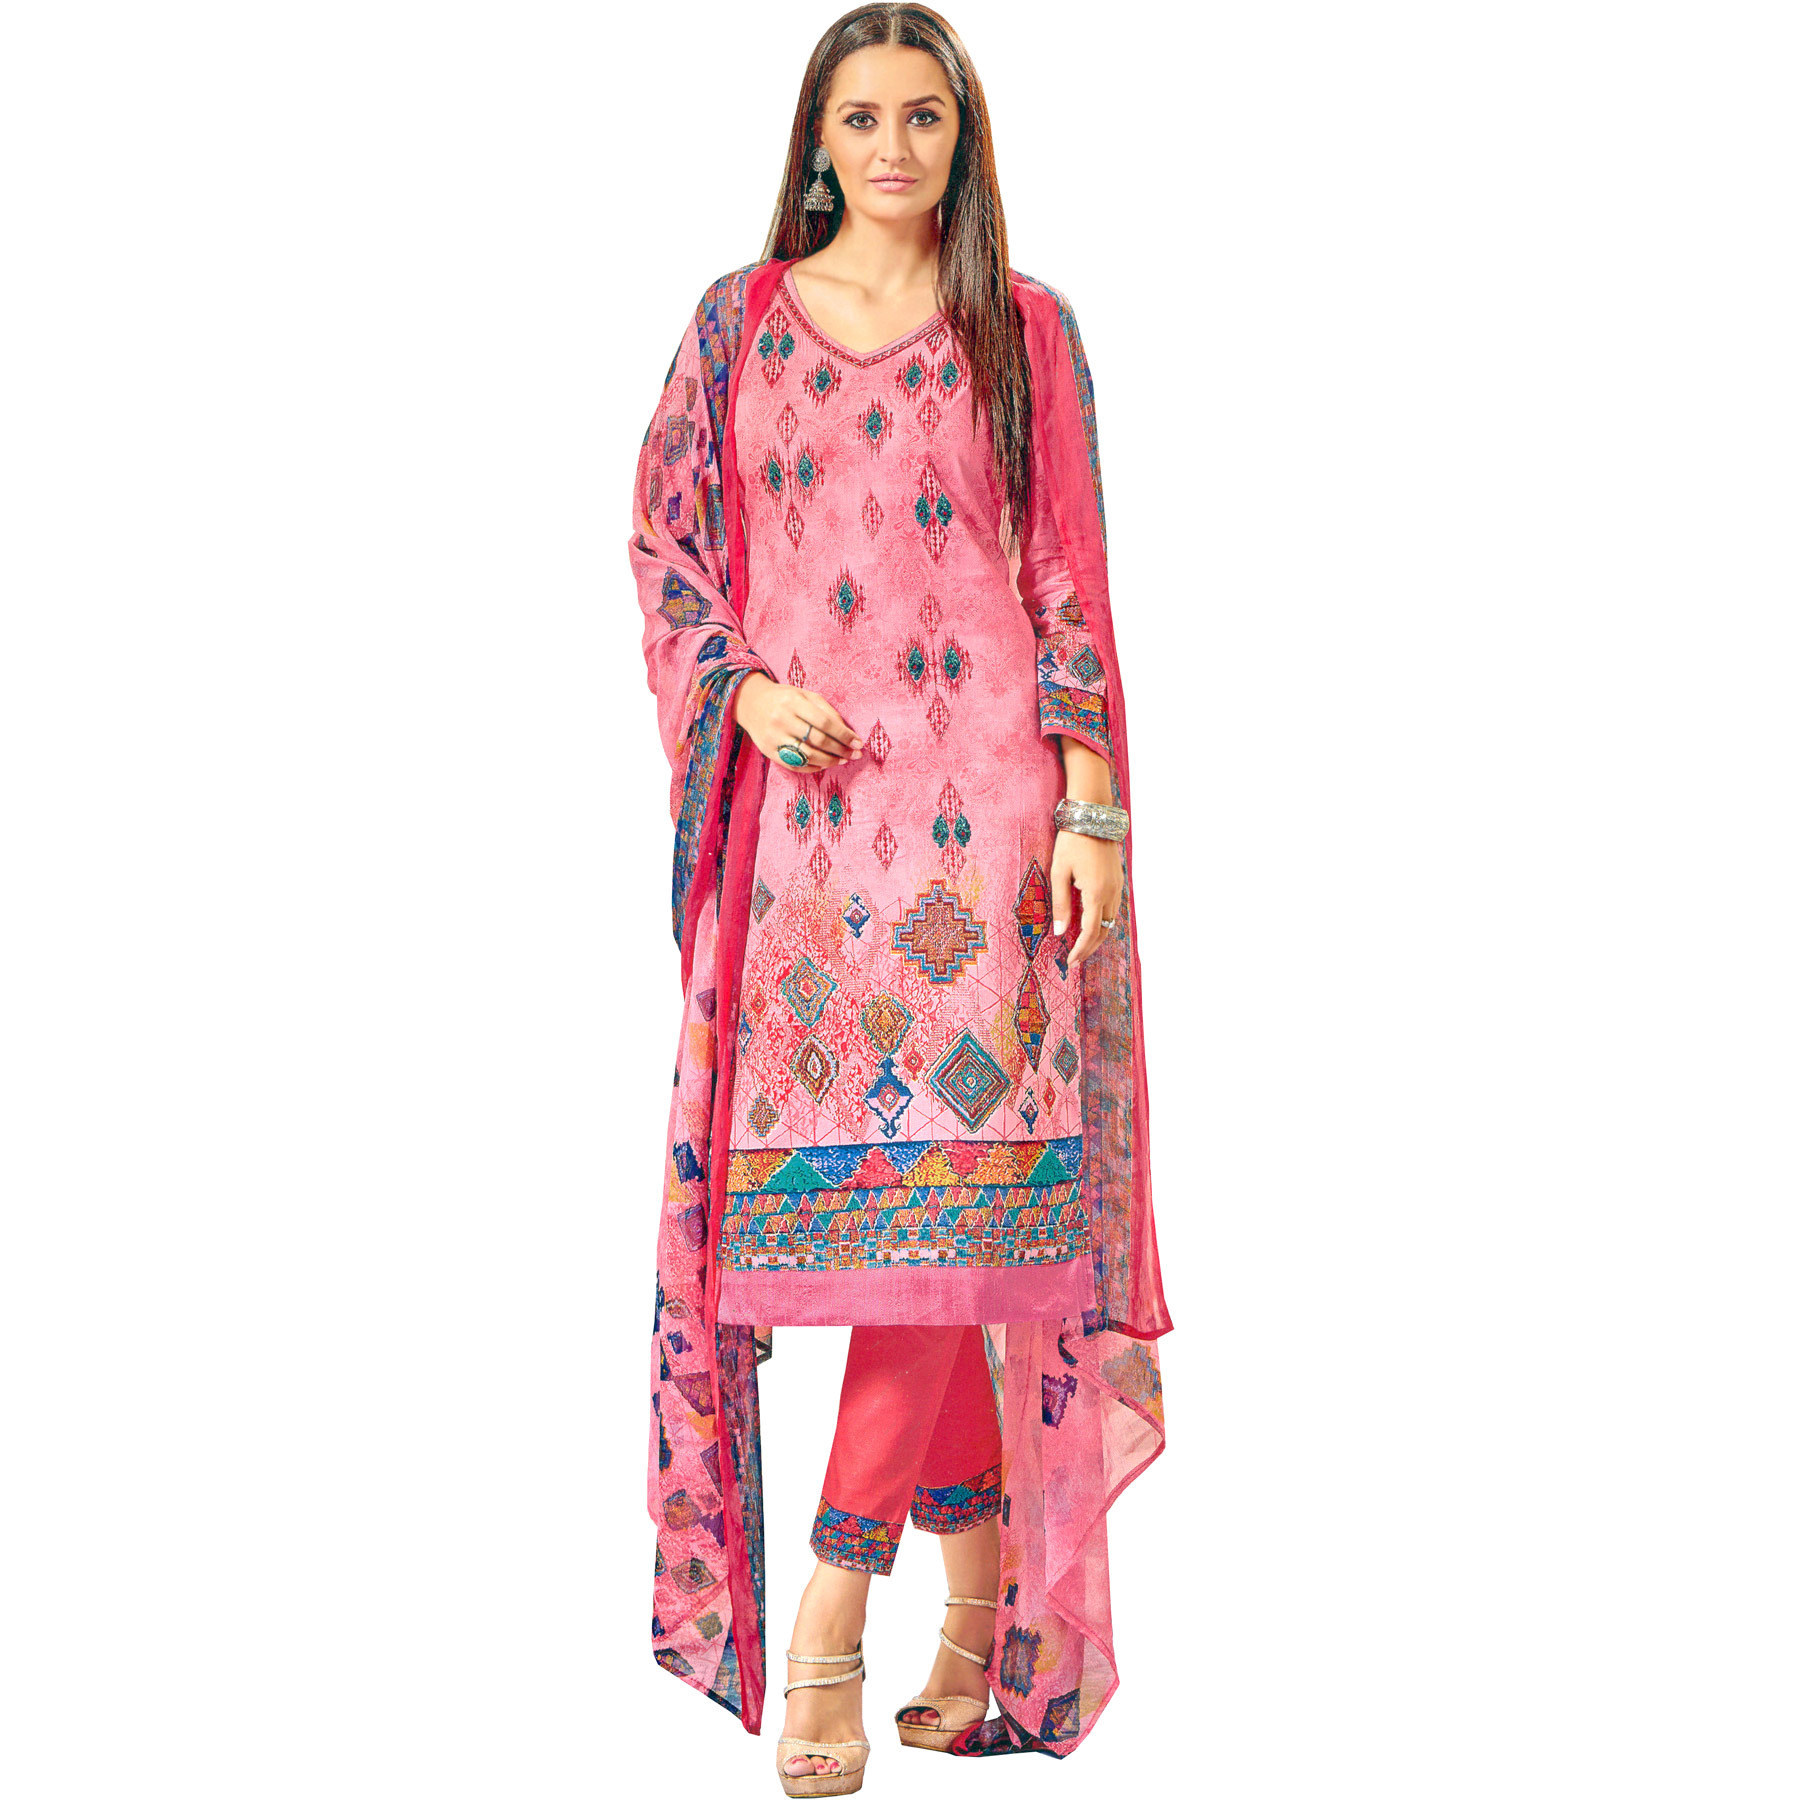 Geranium-Pink Printed Long Parallel Salwar Suit with Embroidery and Chiffon Dupatta